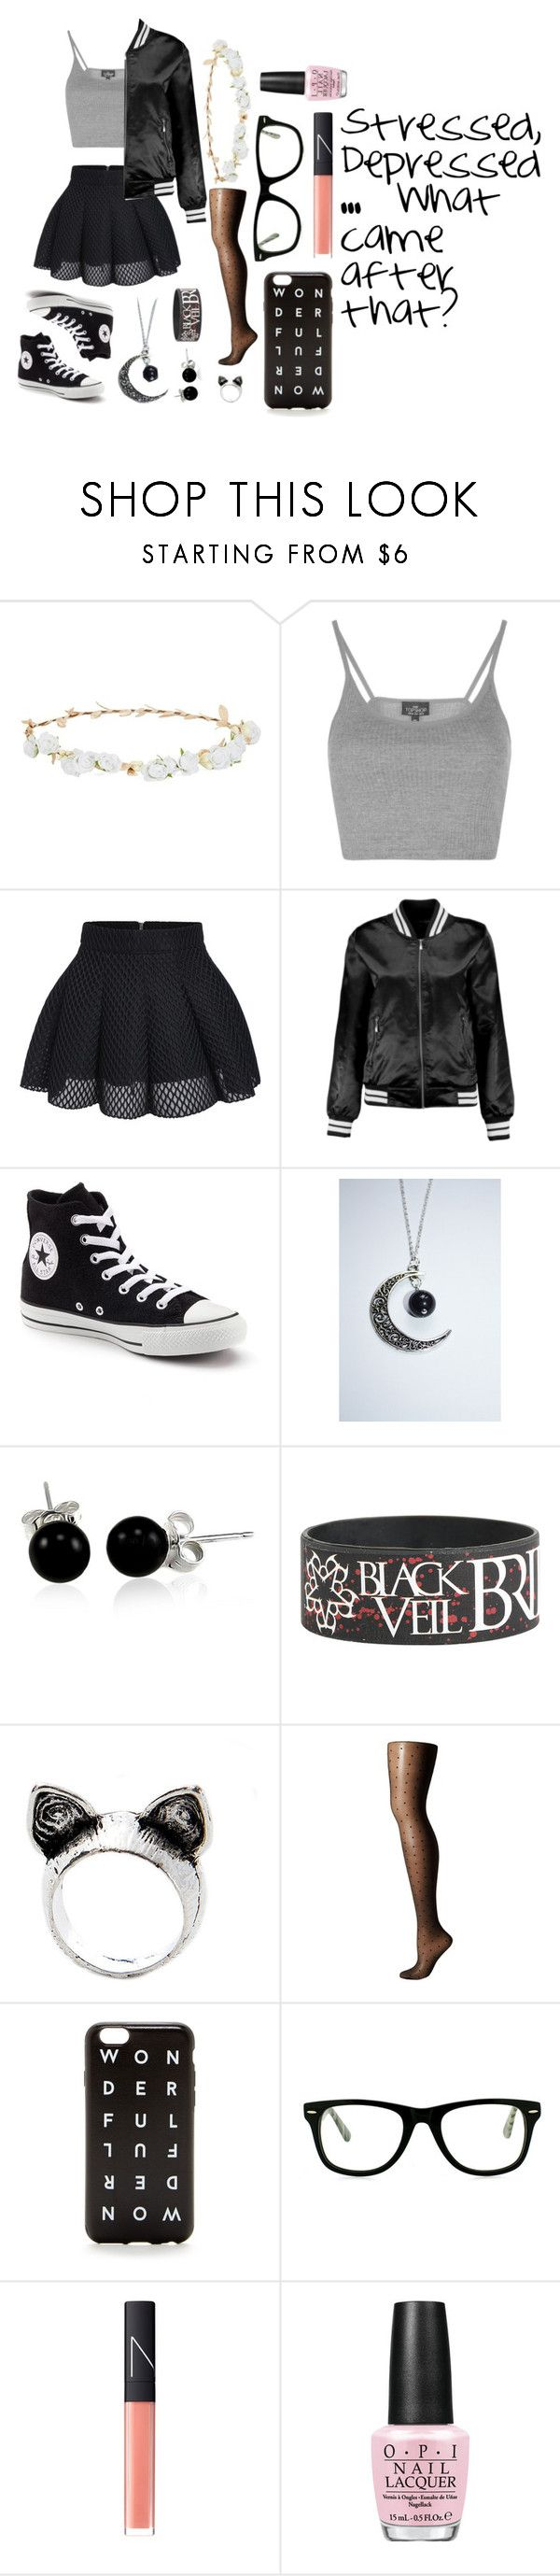 """""""What Came After That?"""" by emosarenottheminority ❤ liked on Polyvore featuring Robert Rose, Topshop, Converse, Bling Jewelry, Falke, J.Crew, Muse, NARS Cosmetics and OPI"""